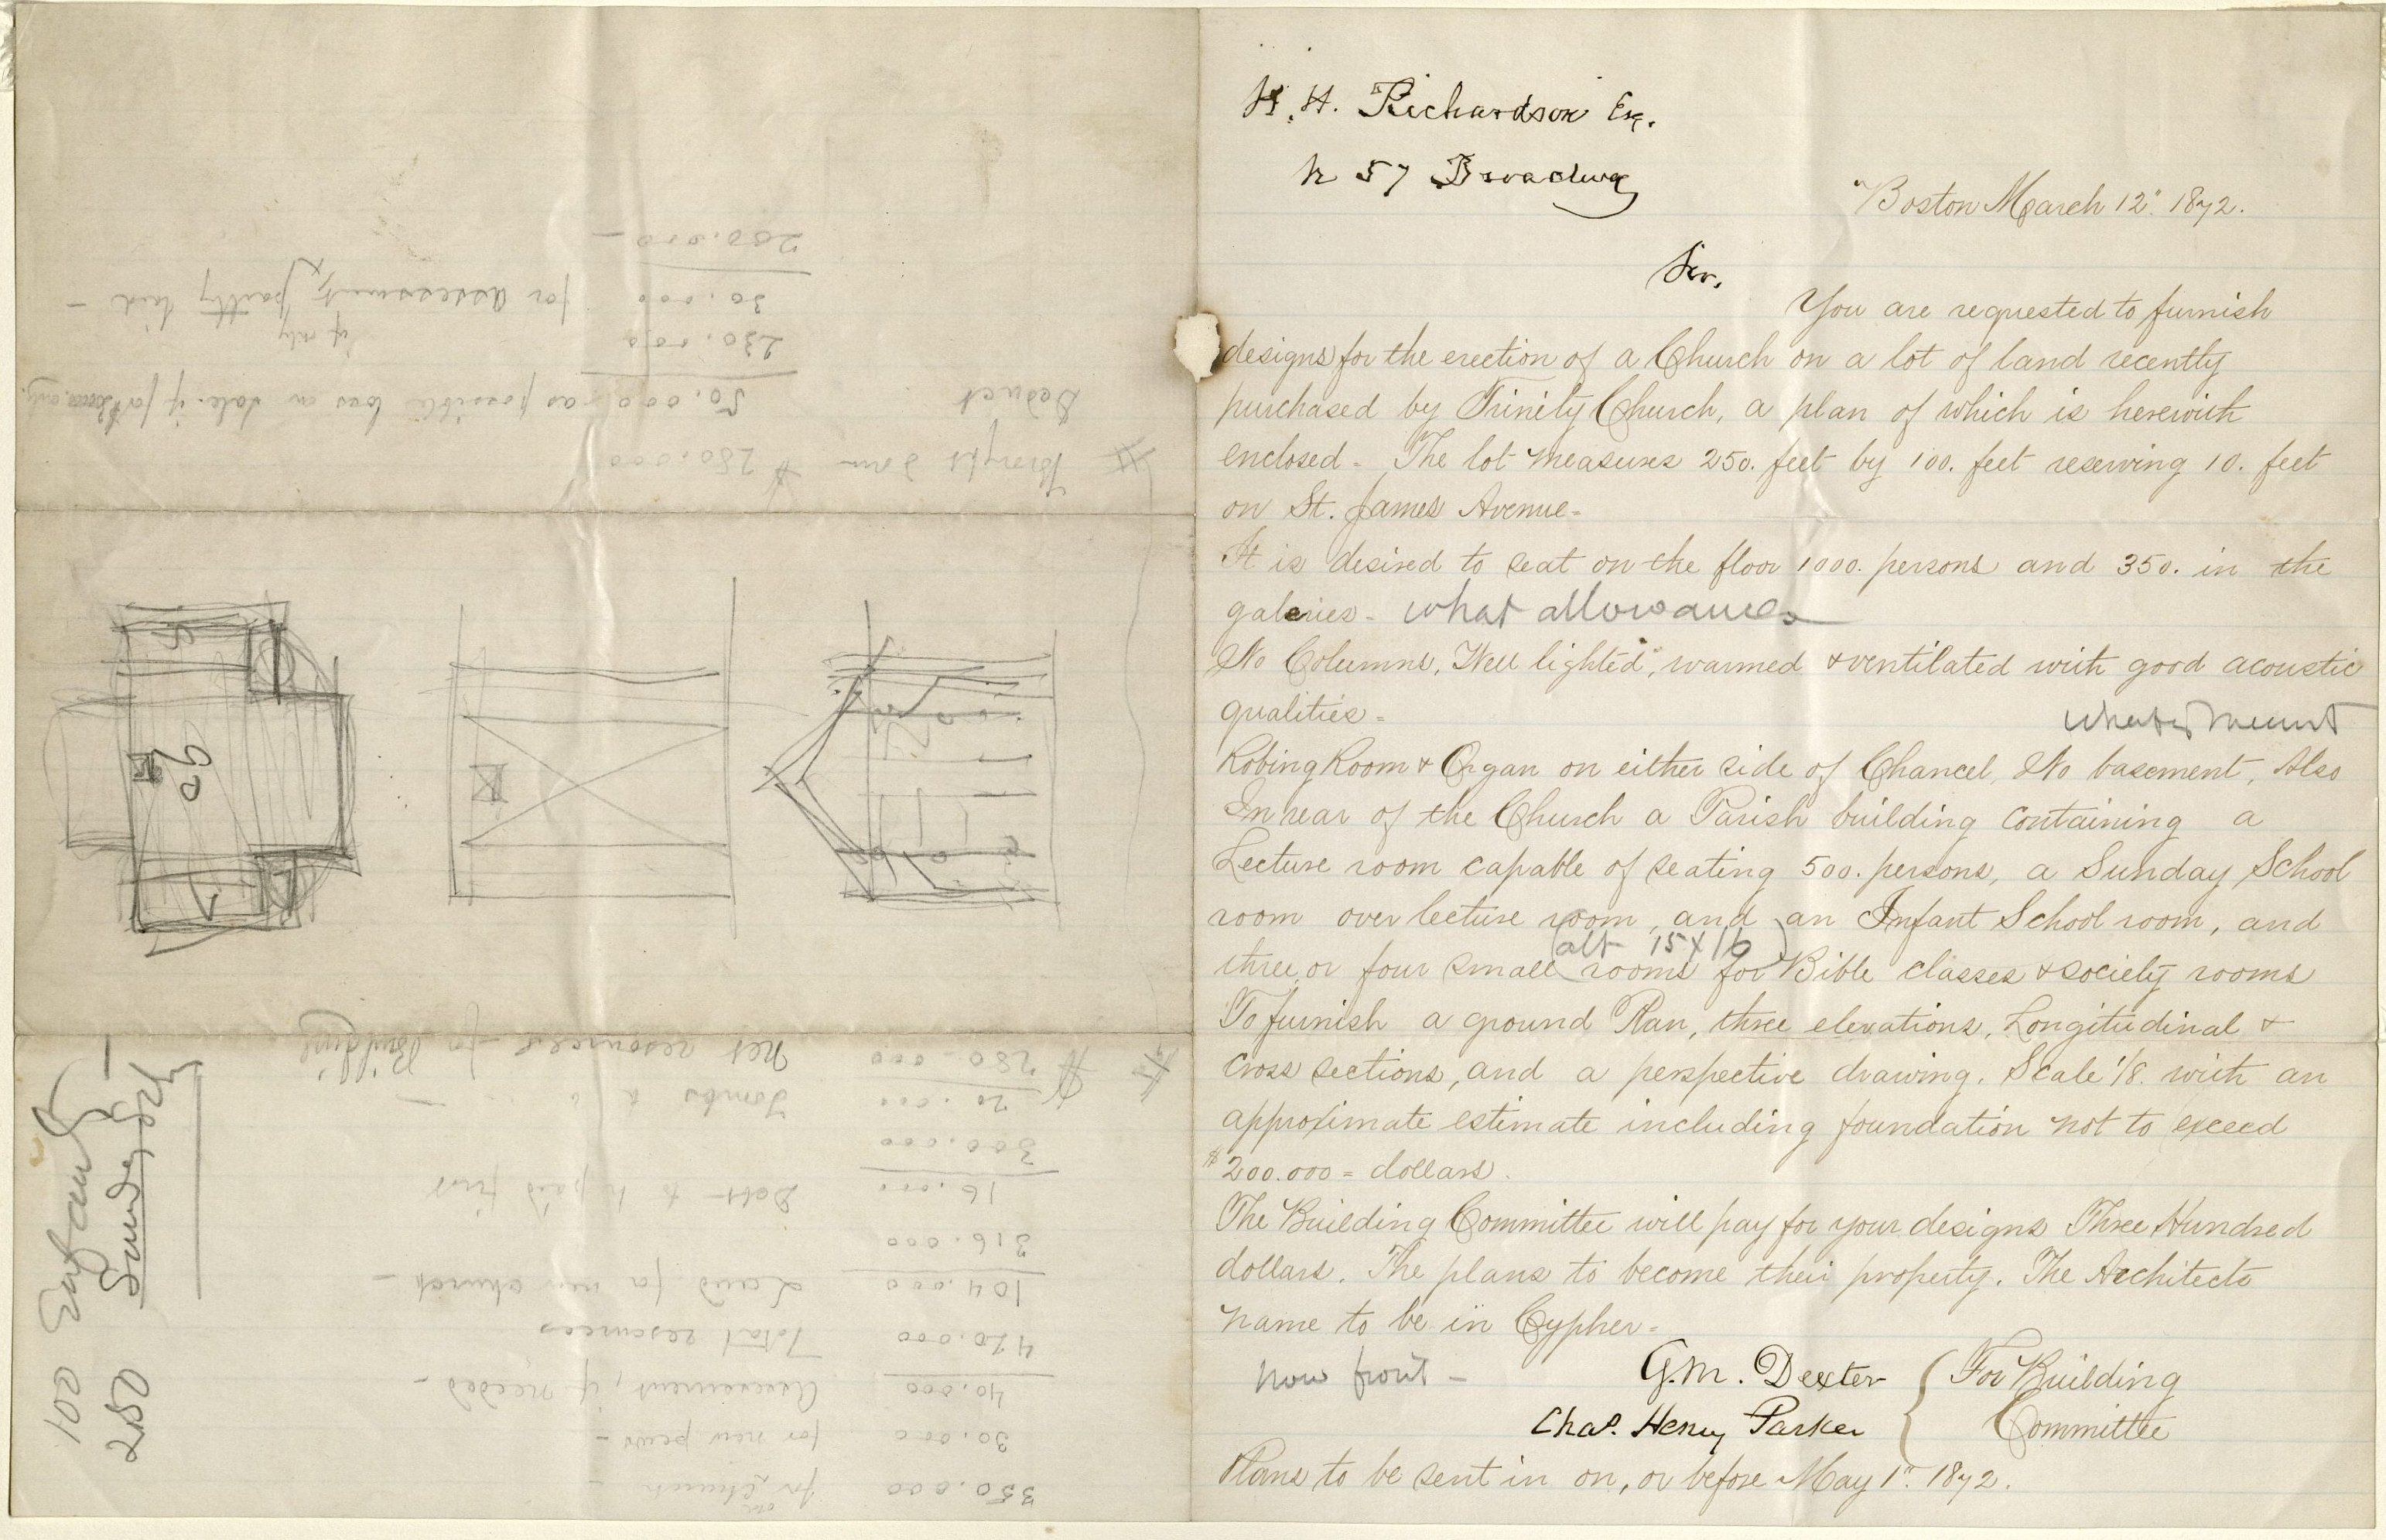 Dexter, George Minot, 1802-1872. 1 letter to Henry Hobson Richardson; Boston, 12 Mar 1872. Houghton Library, Harvard University, MS Typ 1097 (42)